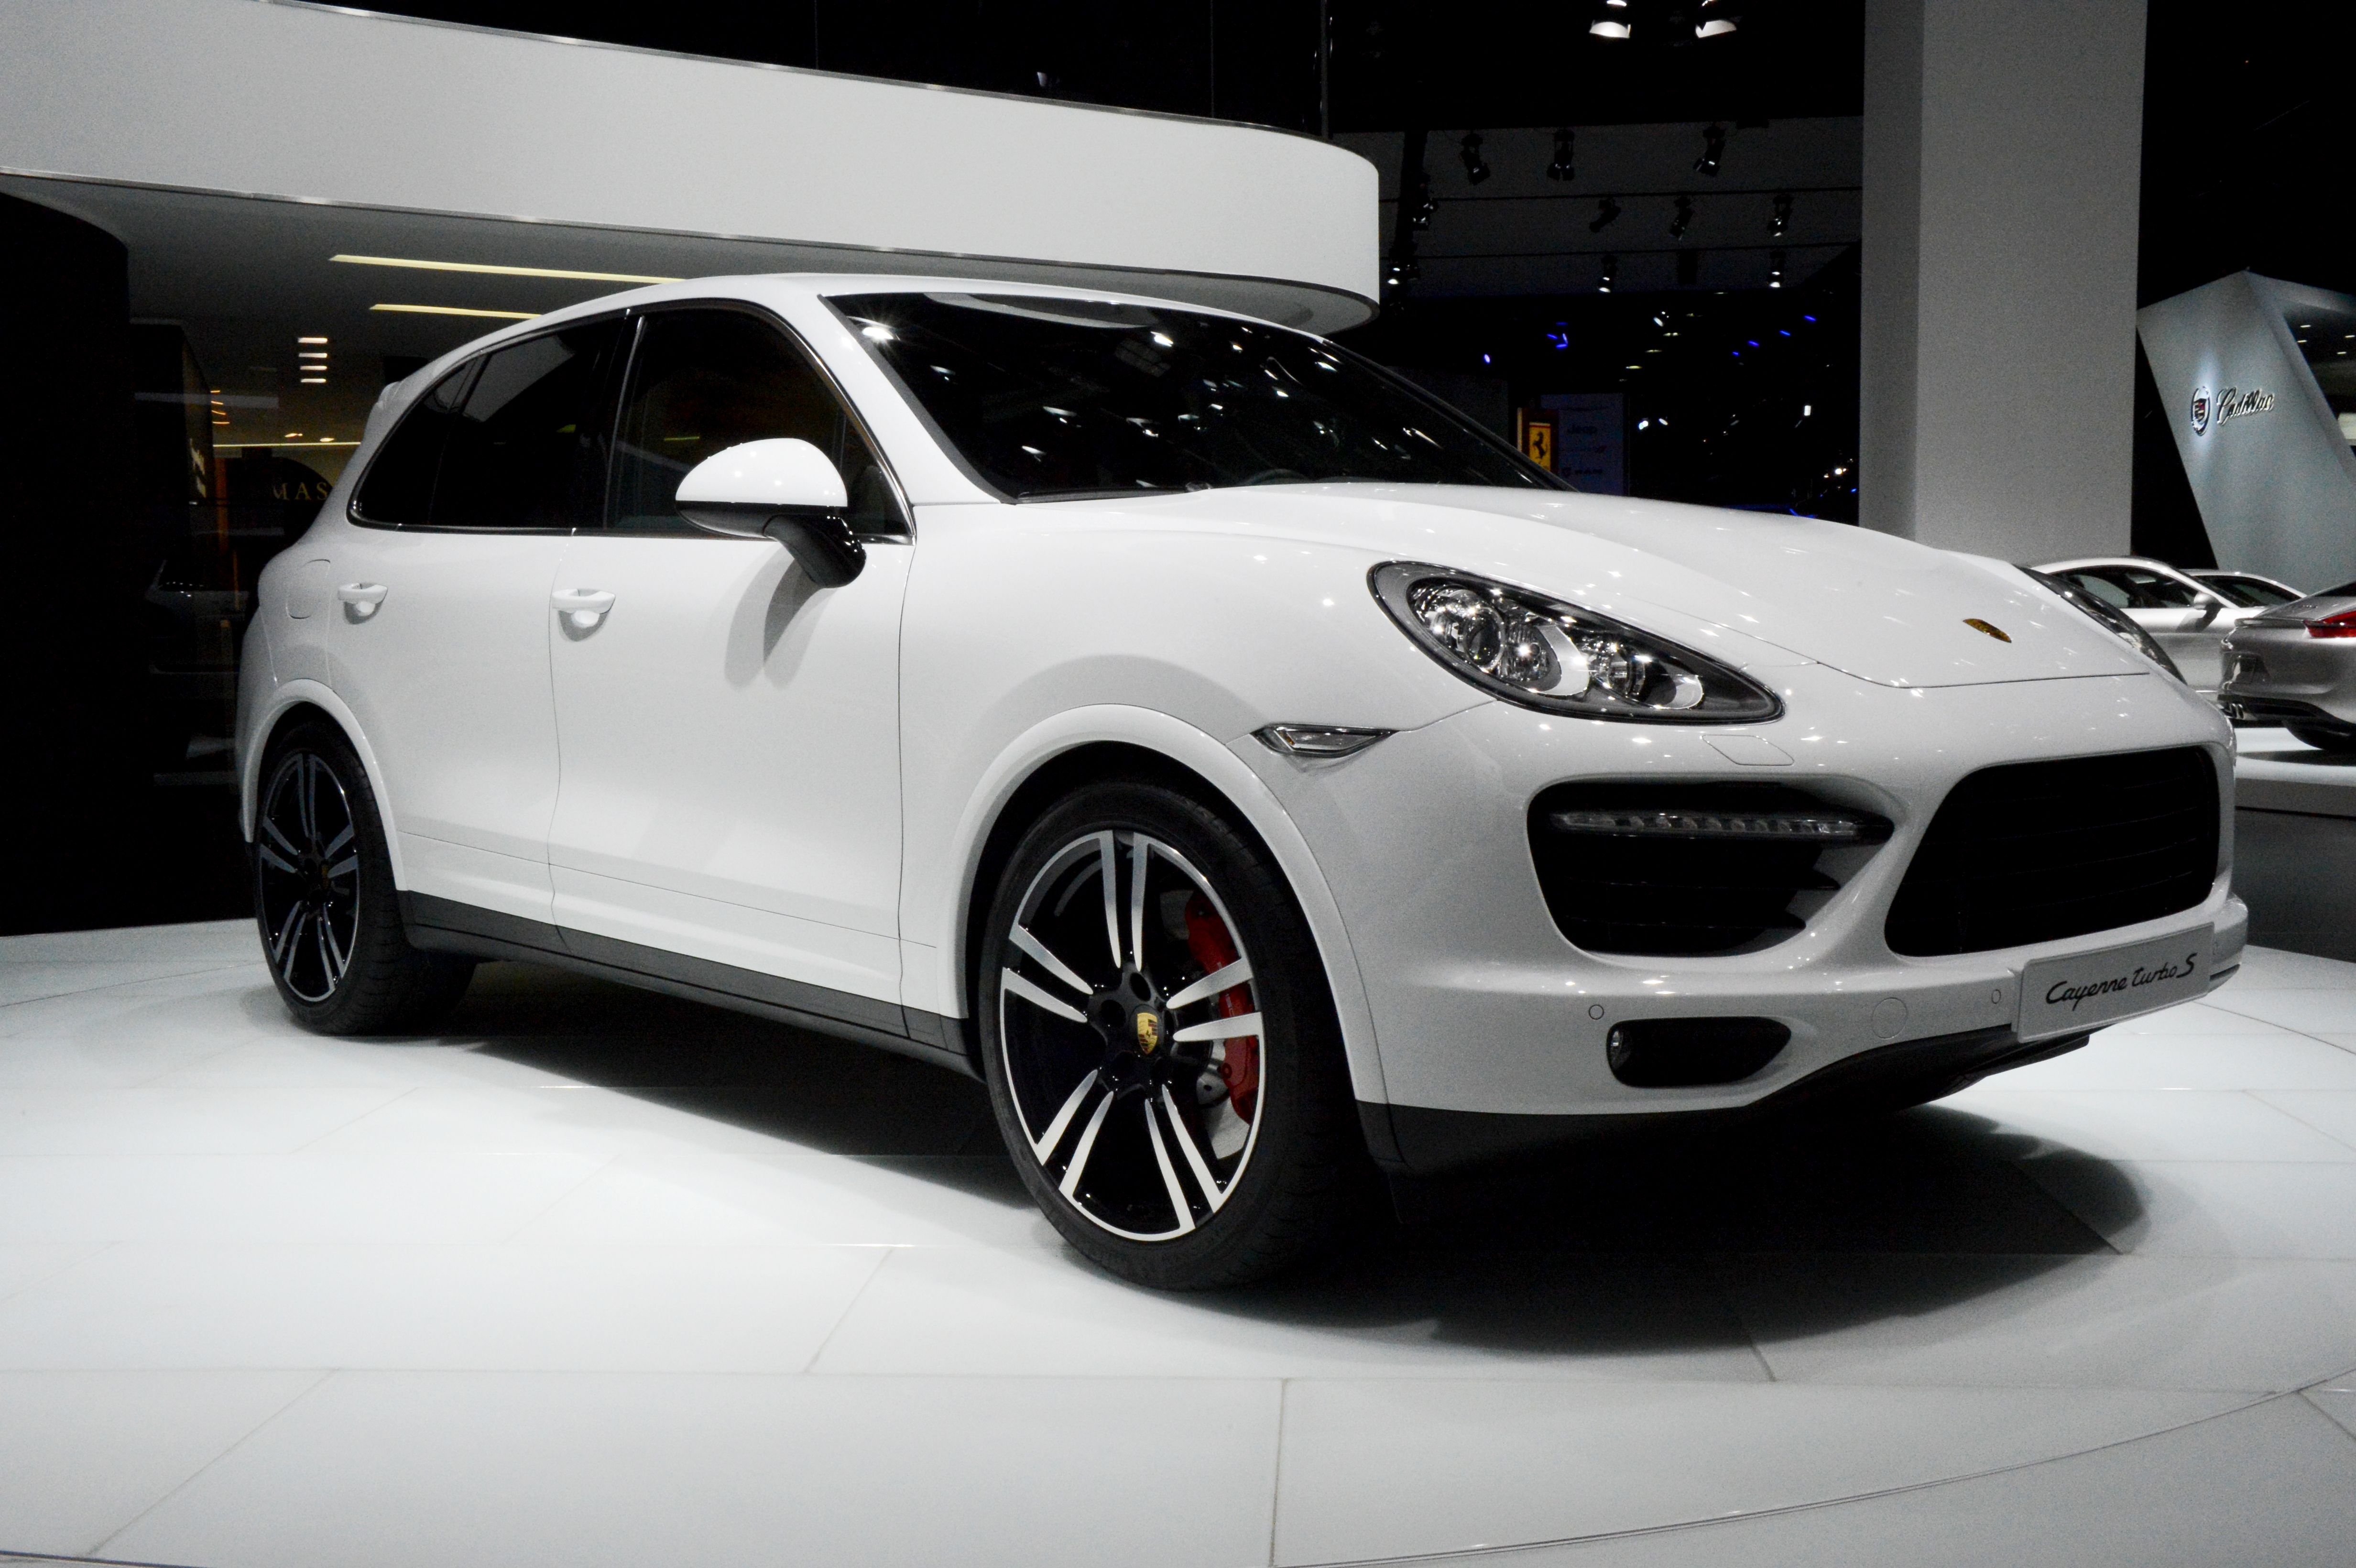 2013-porsche-cayenne-turbo-s-front-at-naias-2013-by-michelin-media